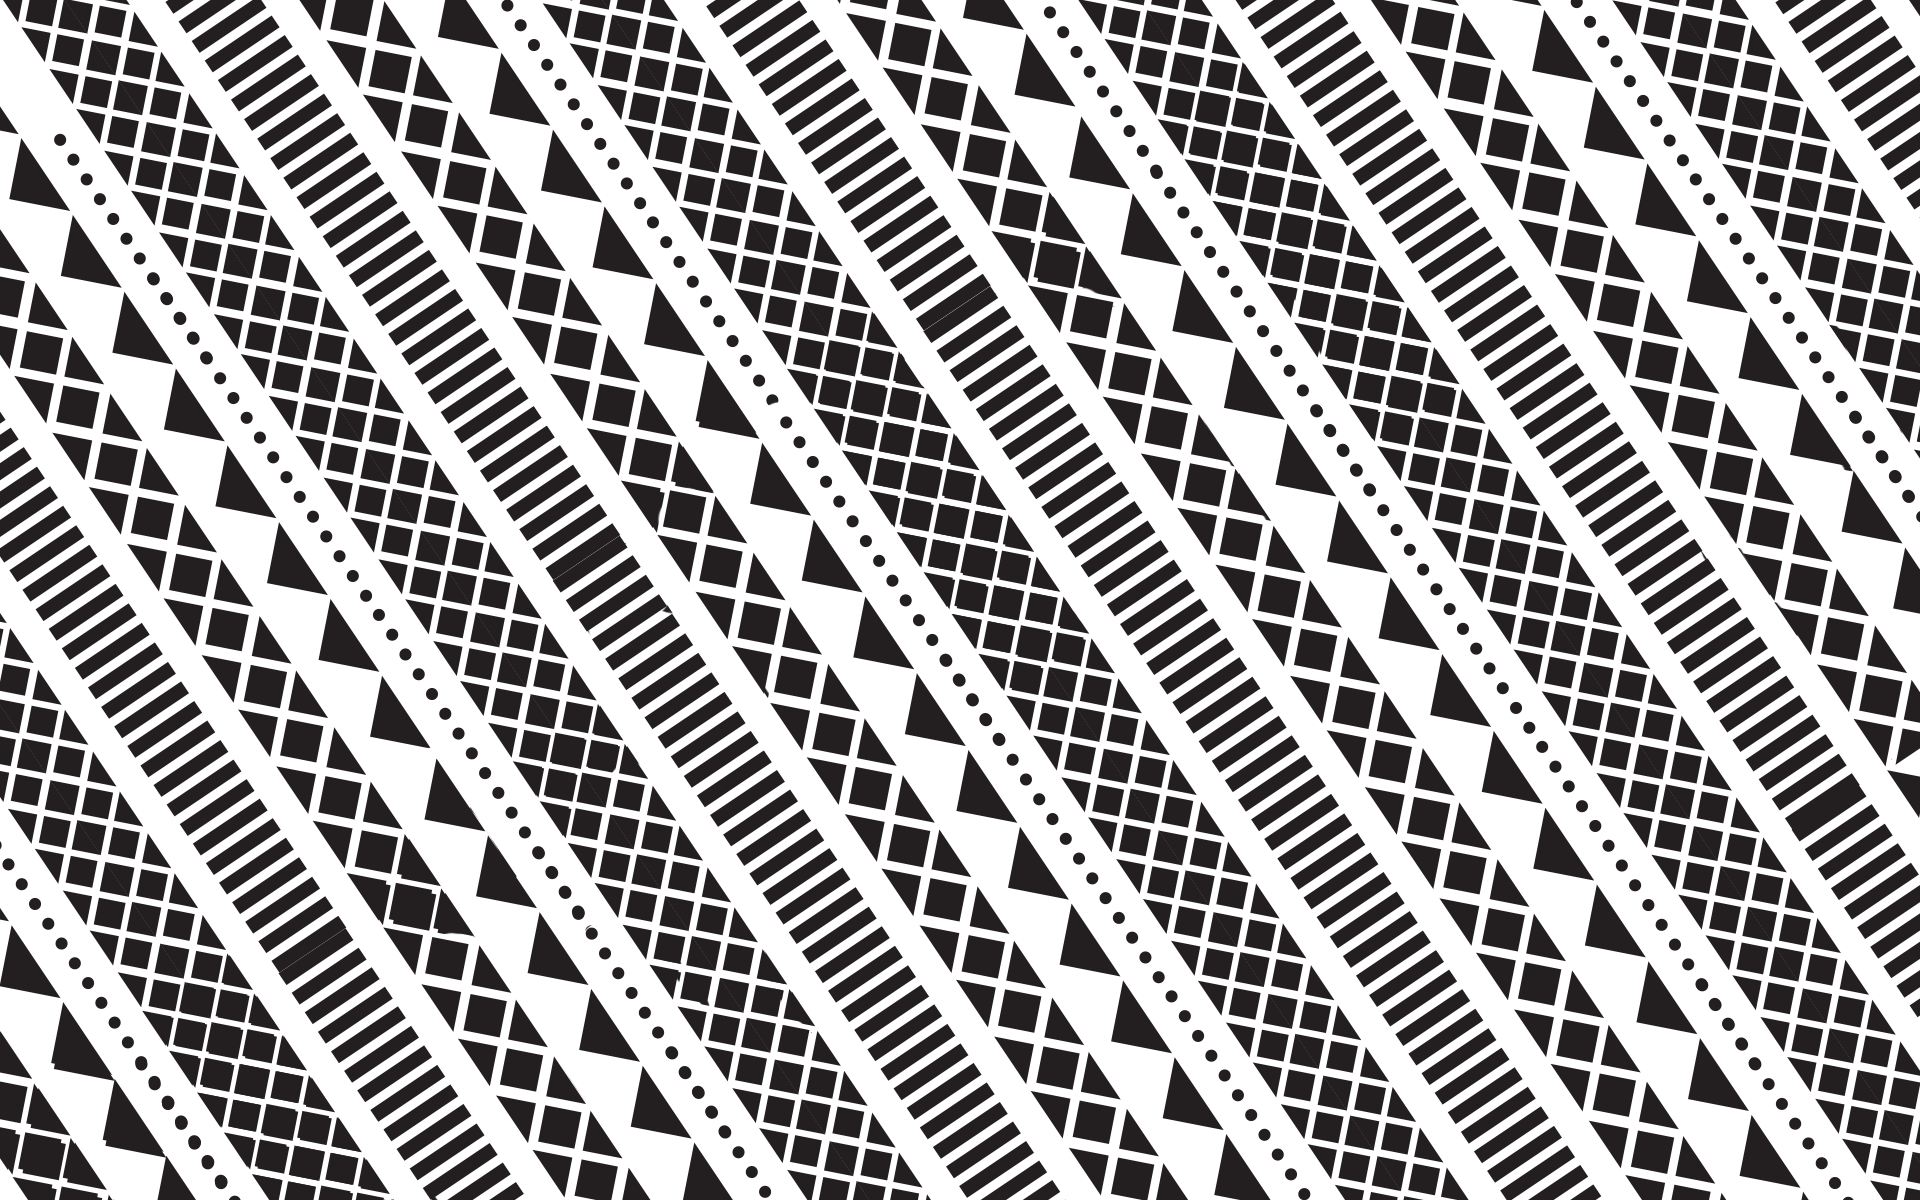 1920x1200 - Cool Tribal Backgrounds 9